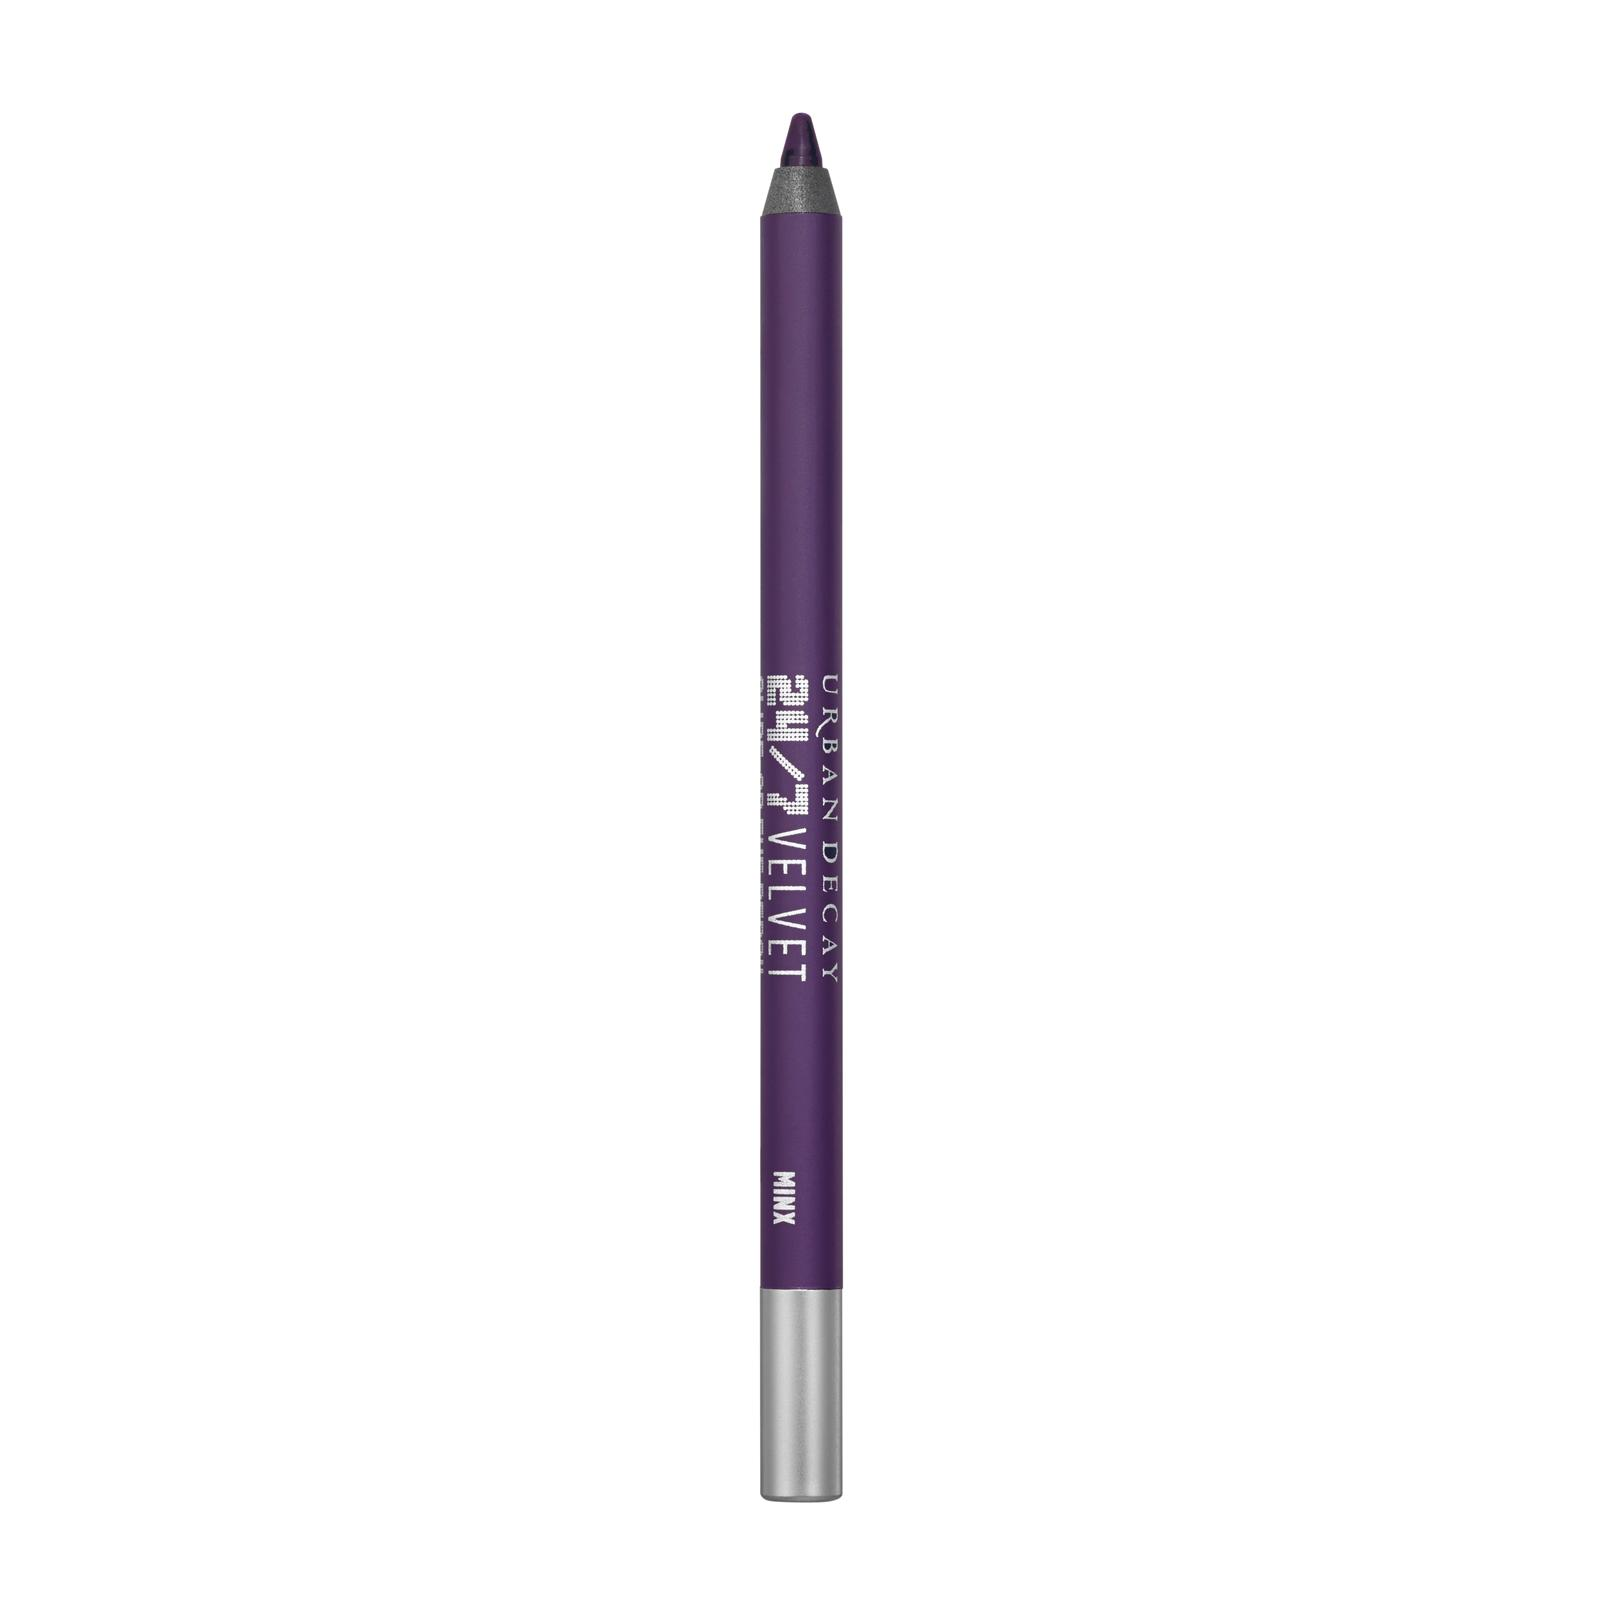 Urban Decay 24/7 Glide On Eye Pencil Vice